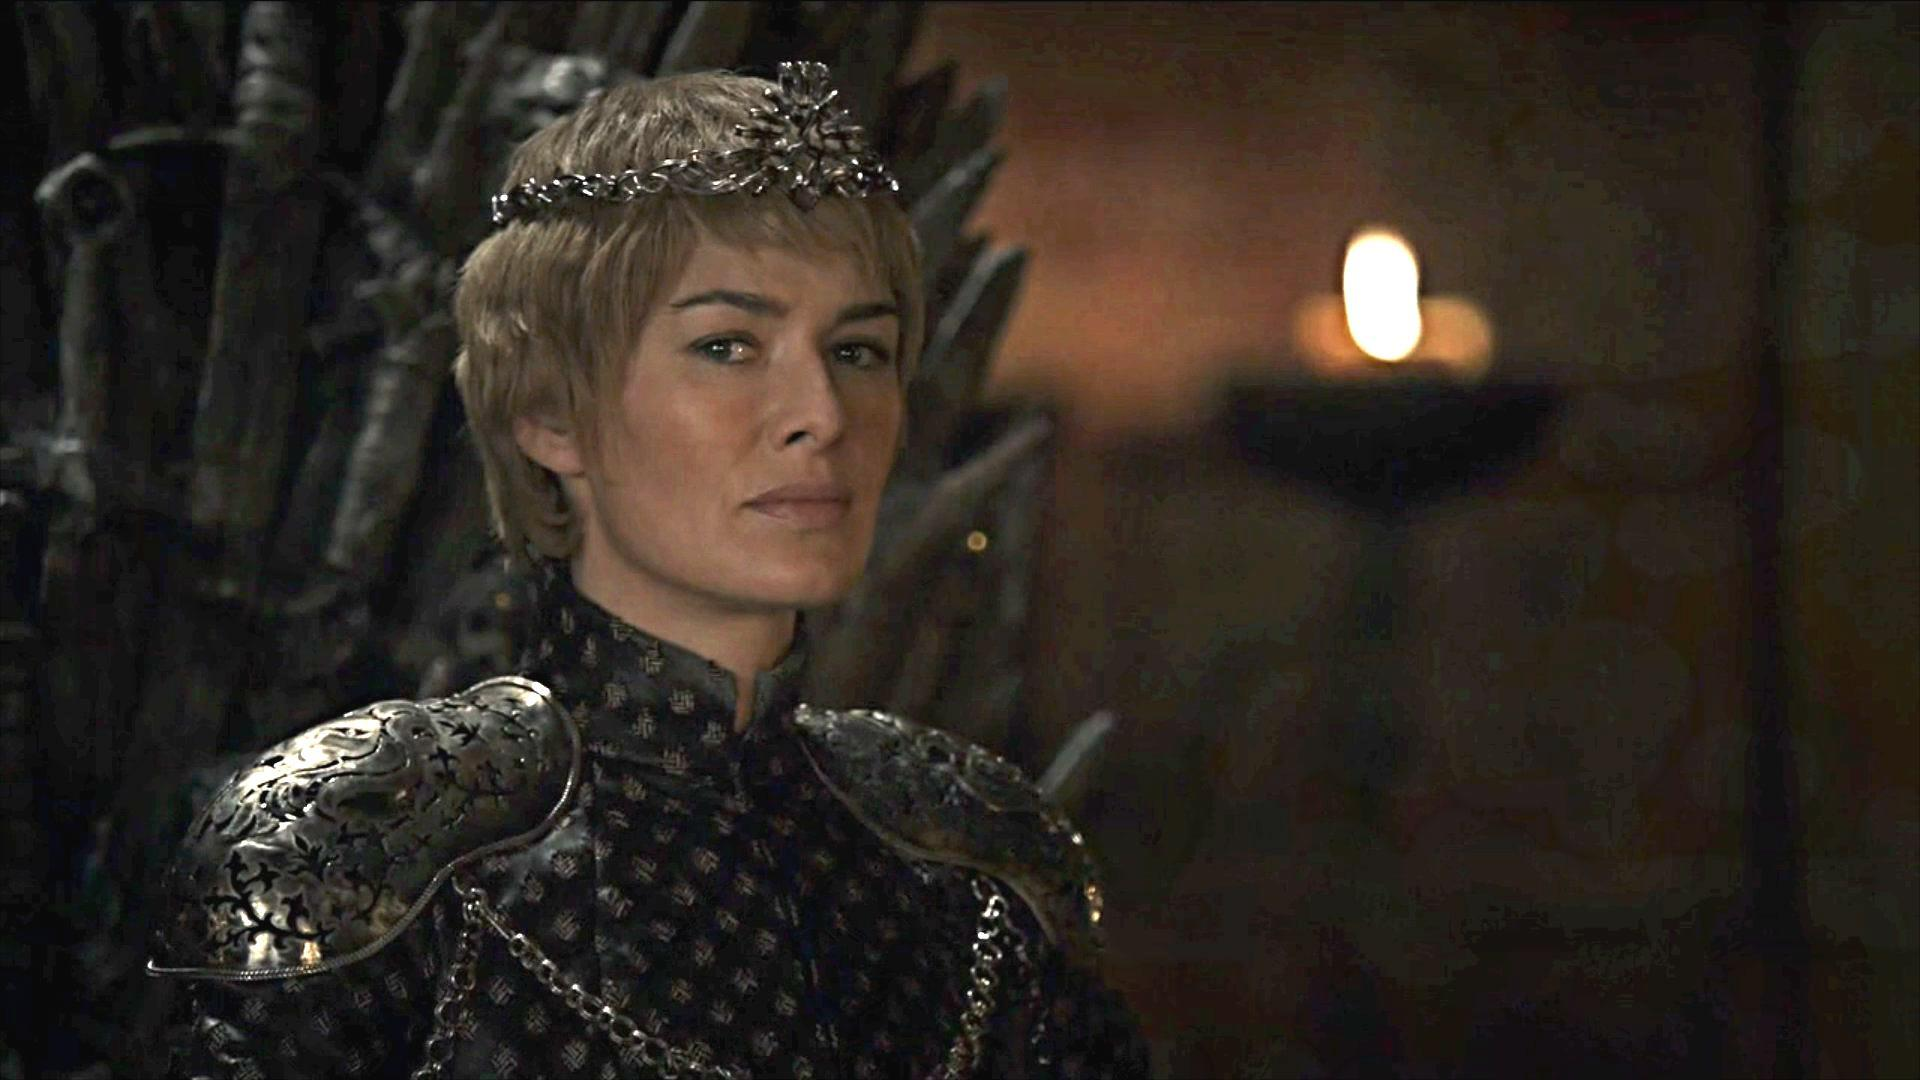 Game of Thrones season 7: Lena Headey doesn't see Cersei's Iron Throne reign lasting very long